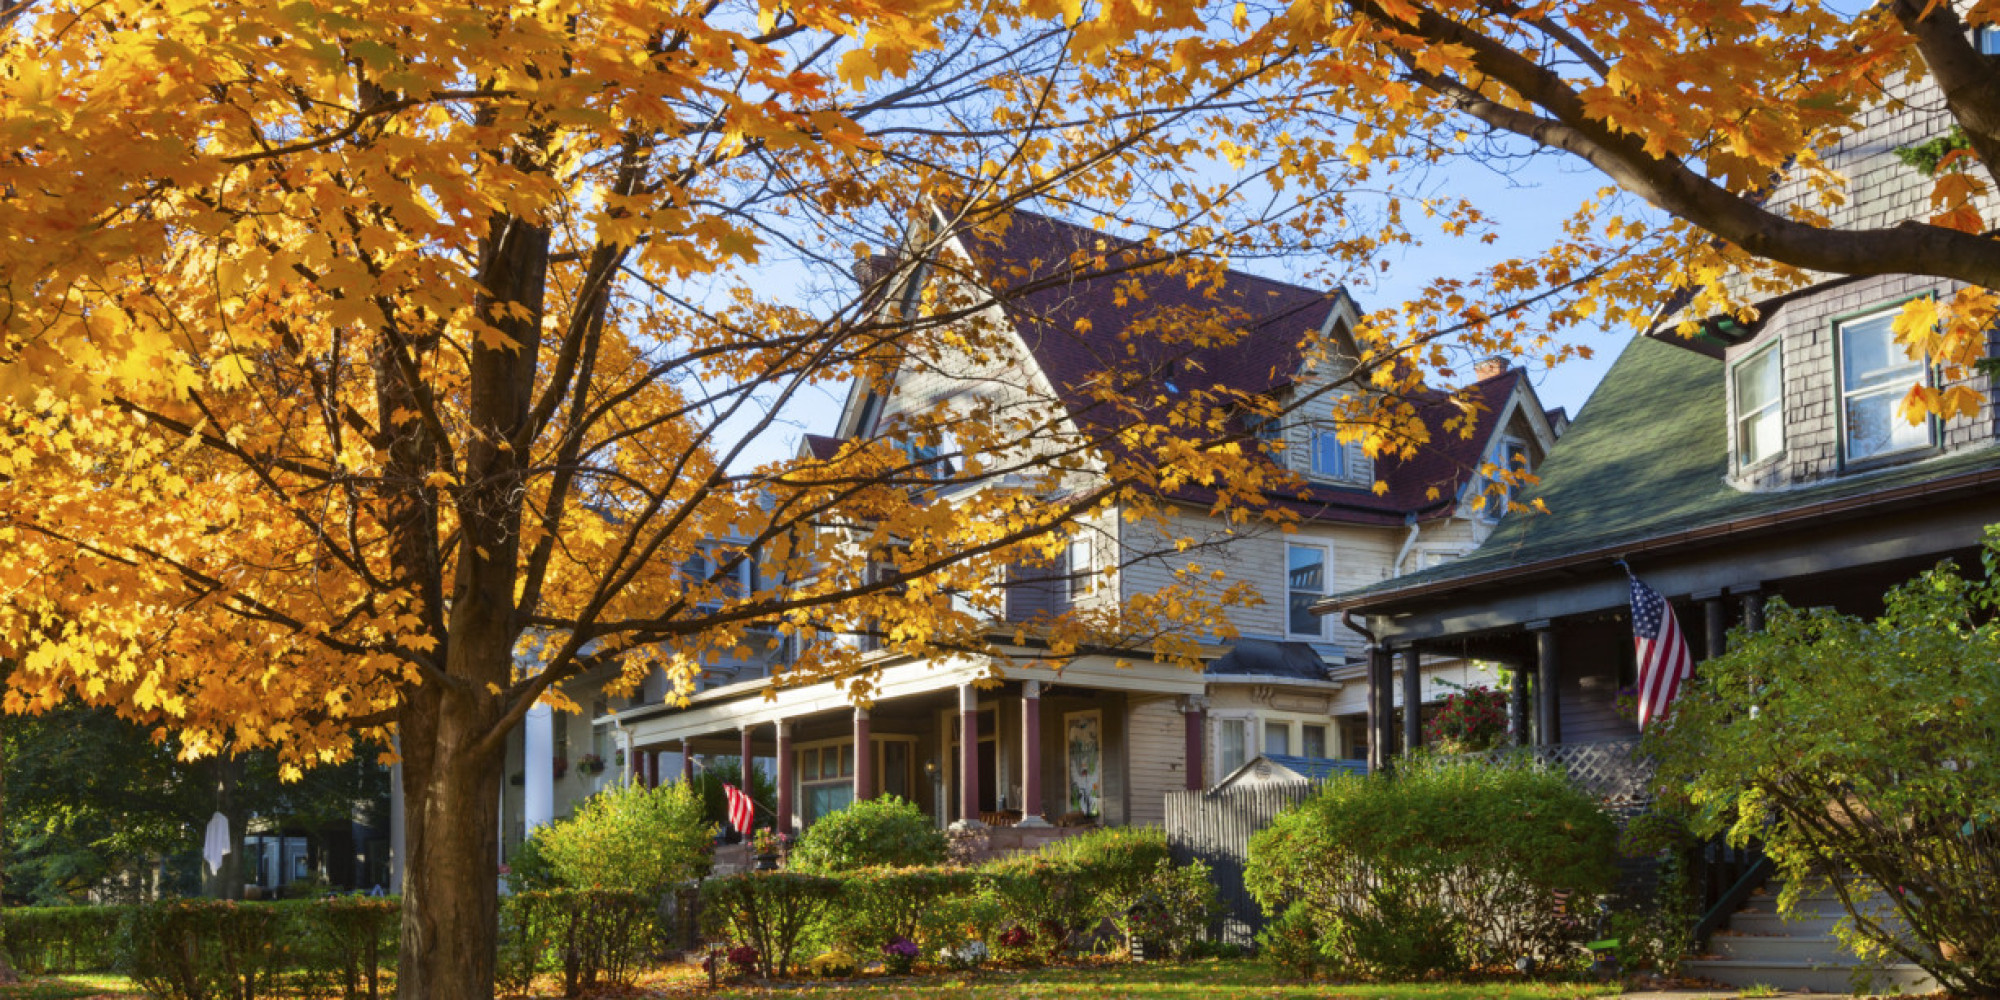 The 10 most beautiful neighborhoods in america ranked for Real time pictures of my house